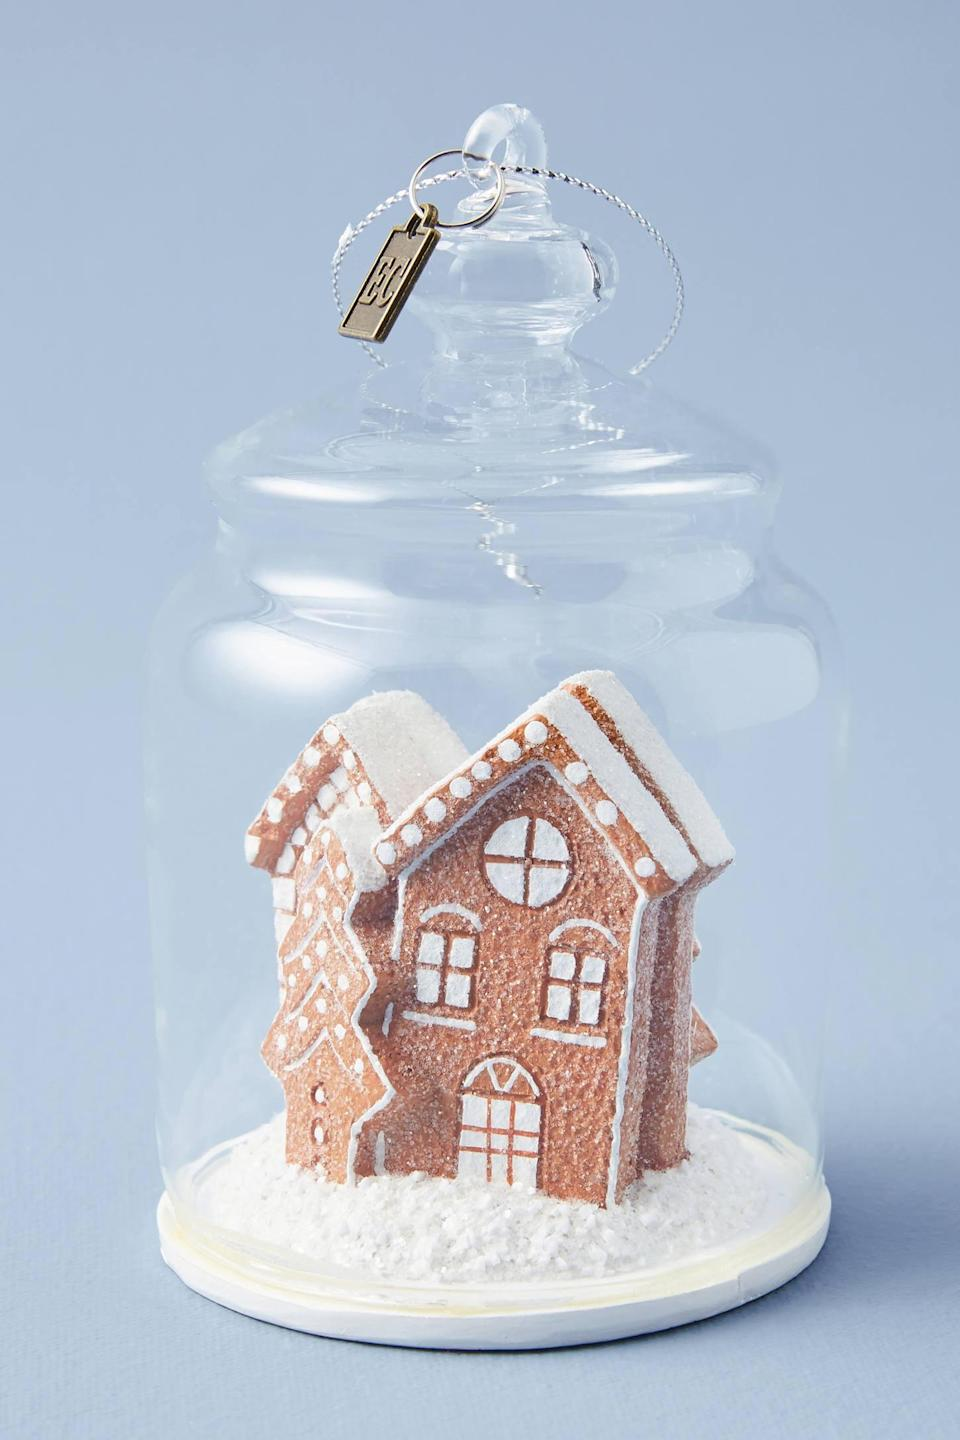 """<p>Trapped in a small glass dome, the <a href=""""https://www.popsugar.com/buy/Gingerbread-Cloche-Ornament-490555?p_name=Gingerbread%20Cloche%20Ornament&retailer=anthropologie.com&pid=490555&price=20&evar1=casa%3Aus&evar9=46615300&evar98=https%3A%2F%2Fwww.popsugar.com%2Fhome%2Fphoto-gallery%2F46615300%2Fimage%2F46615426%2FGingerbread-Cloche-Ornament&list1=shopping%2Canthropologie%2Choliday%2Cchristmas%2Cchristmas%20decorations%2Choliday%20decor%2Chome%20shopping&prop13=mobile&pdata=1"""" rel=""""nofollow noopener"""" class=""""link rapid-noclick-resp"""" target=""""_blank"""" data-ylk=""""slk:Gingerbread Cloche Ornament"""">Gingerbread Cloche Ornament</a> ($20) makes an adorable gift. </p>"""